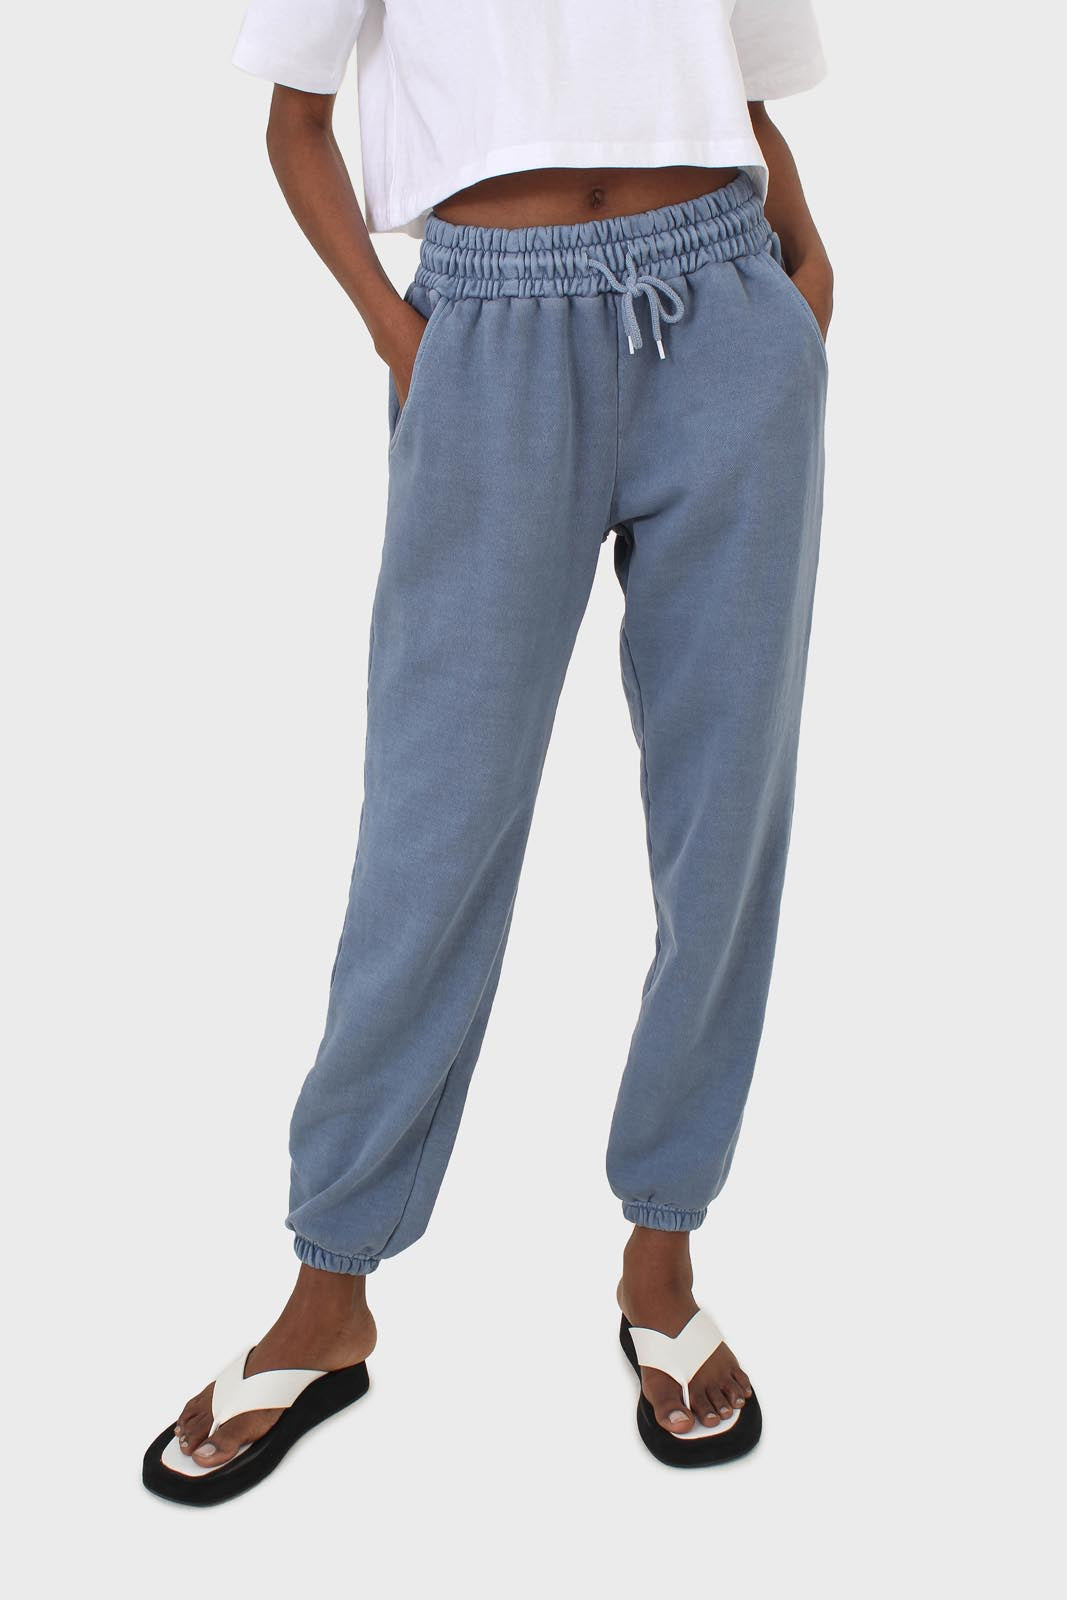 Dusty blue pigment sweatpants10